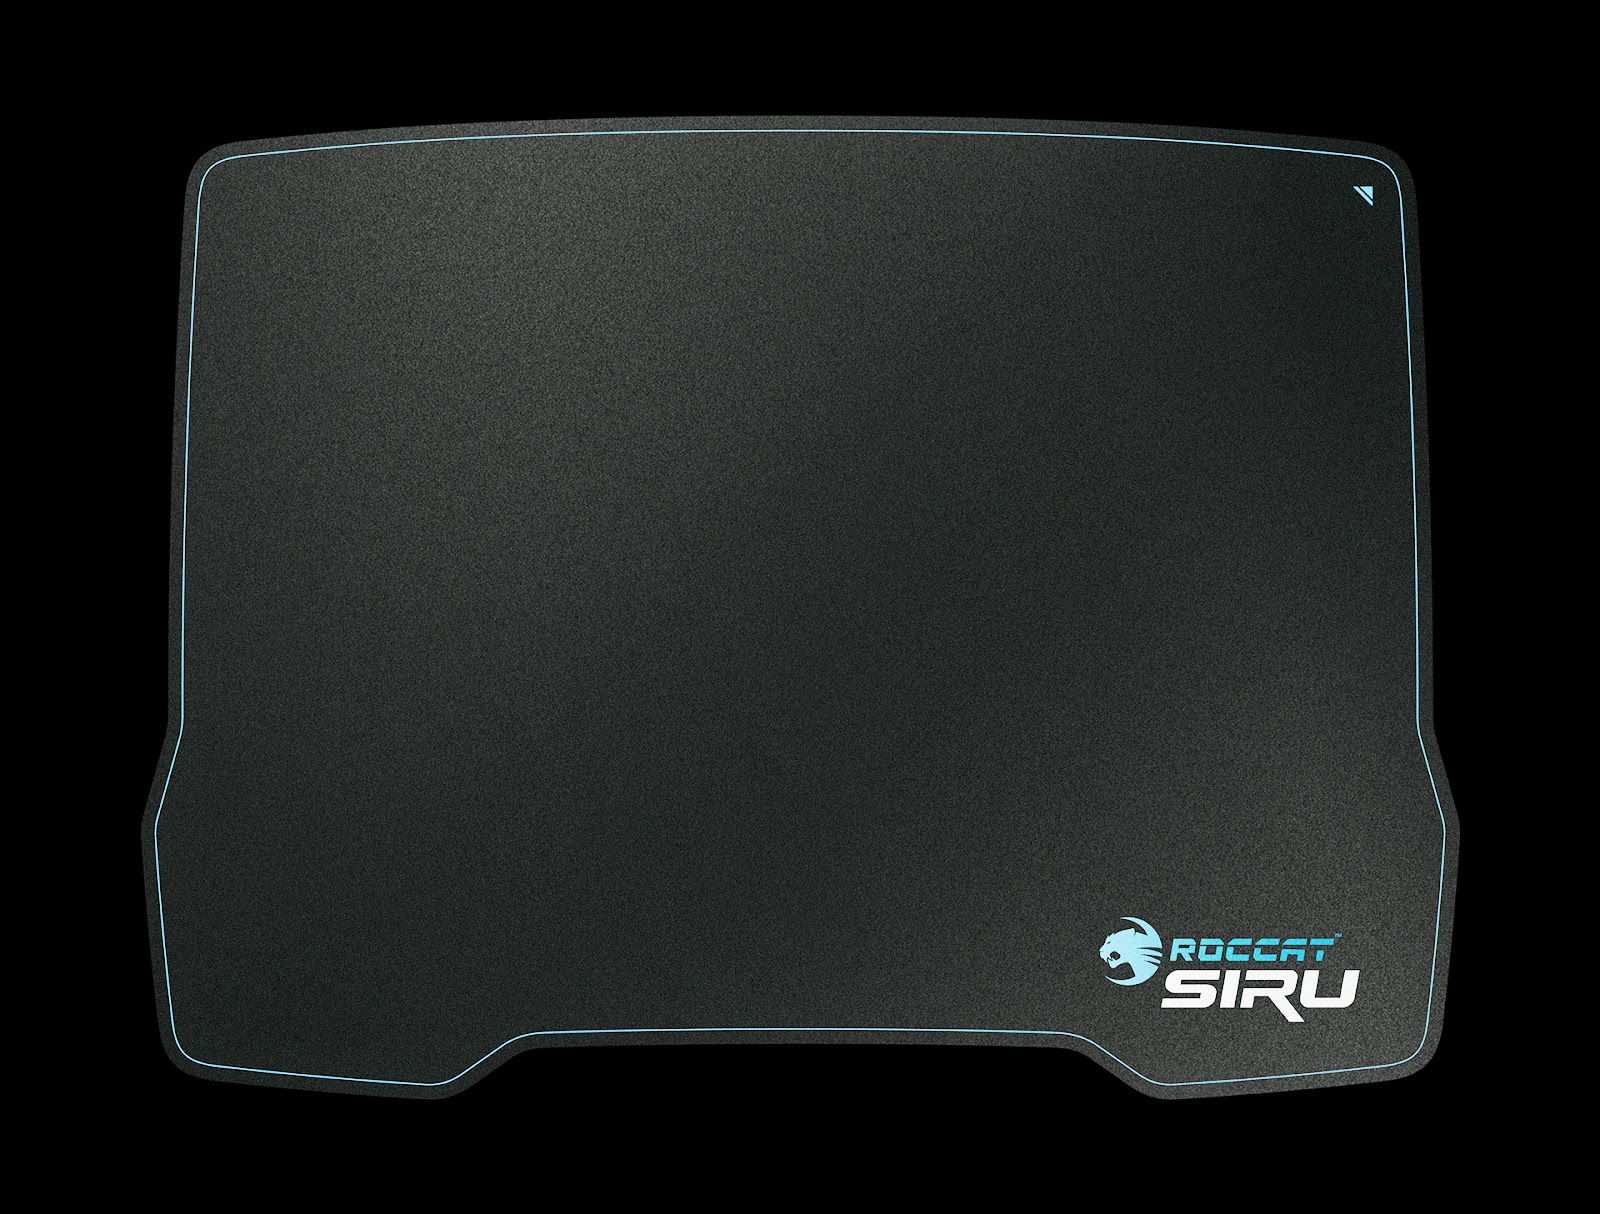 Unboxing & Review - ROCCAT SIRU 30